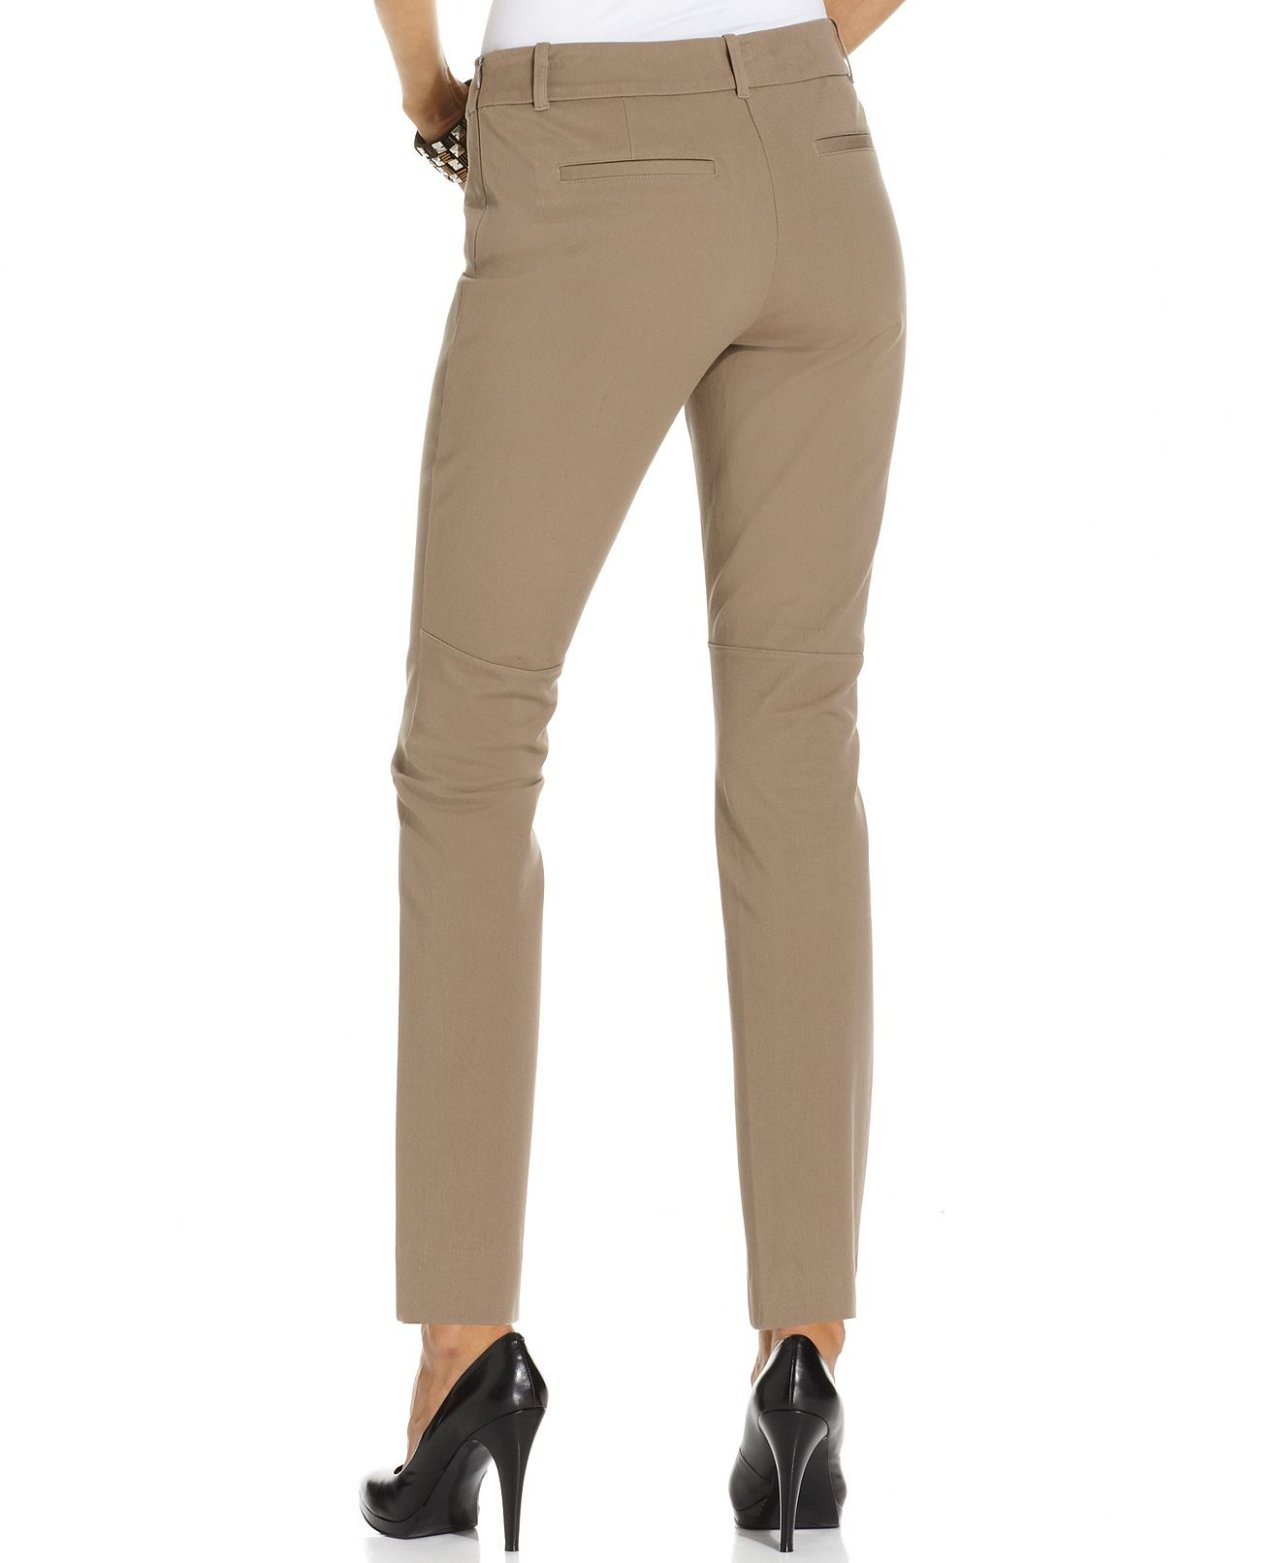 Model Metaphor Women39s Skinny Dress Pants  Sears